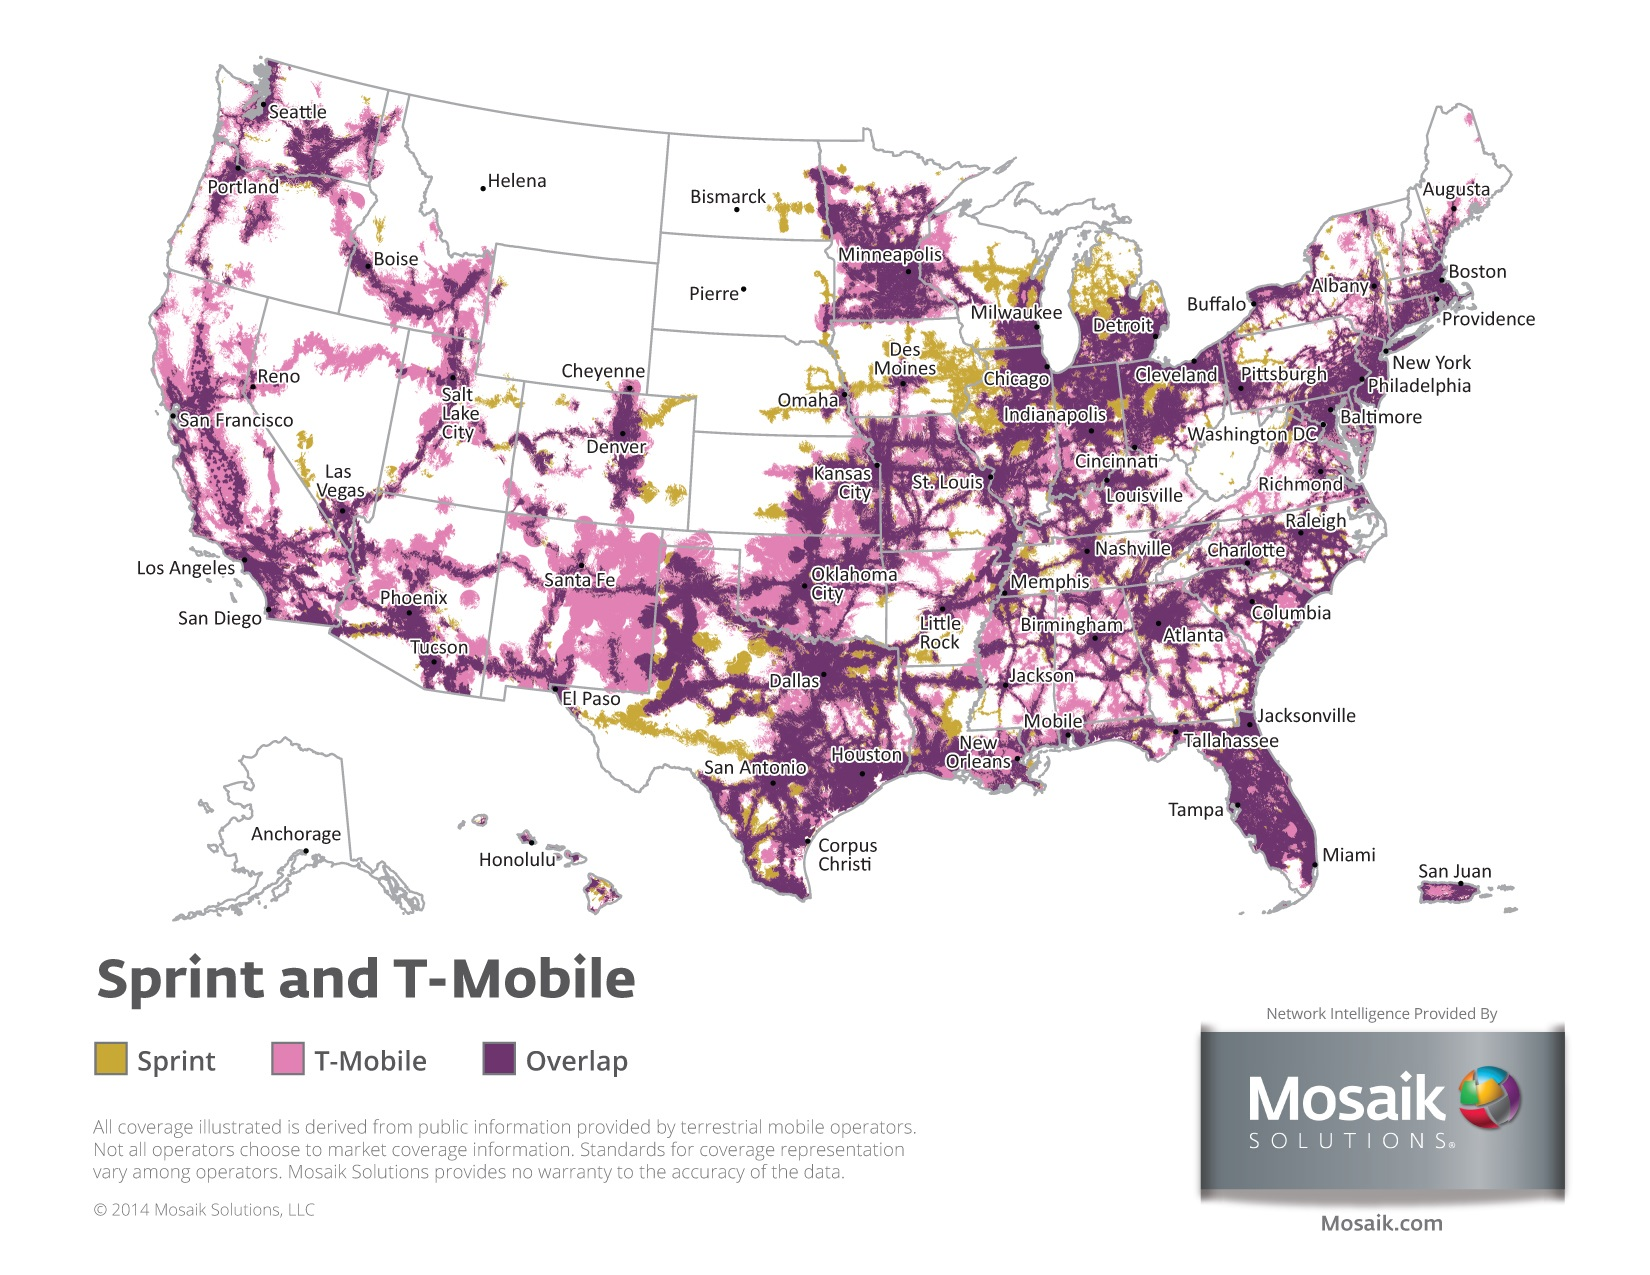 Coverage Maps For All Prepaid Carriers Prepaid Phone News - T mobile coverage map florida